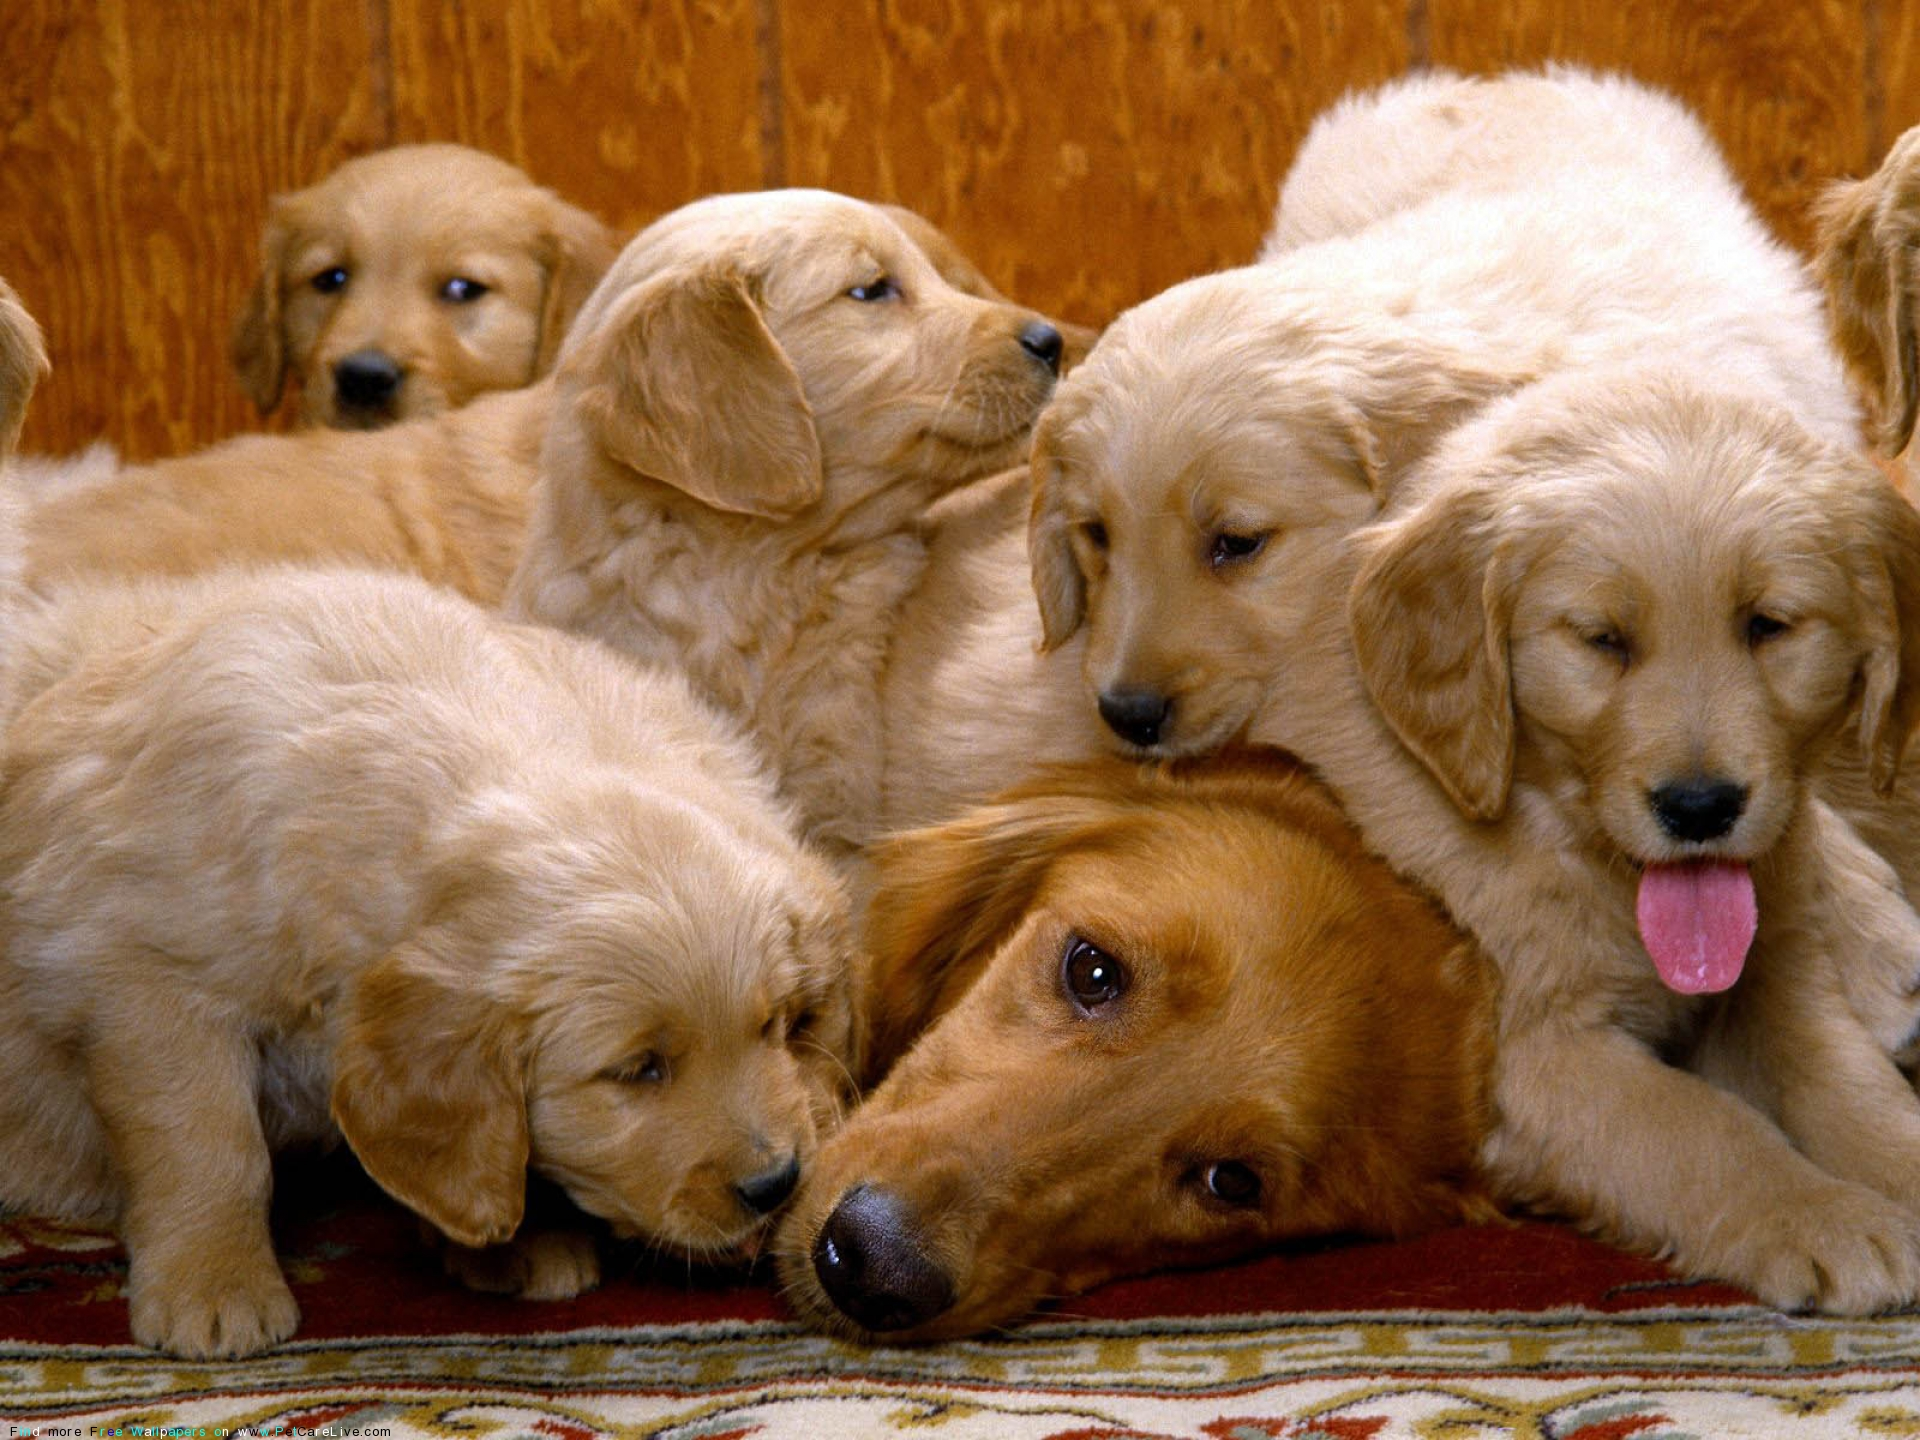 The Free Little Cute Dog S Puppies Desktop Wallpaper Pictures For Pc Mac 119